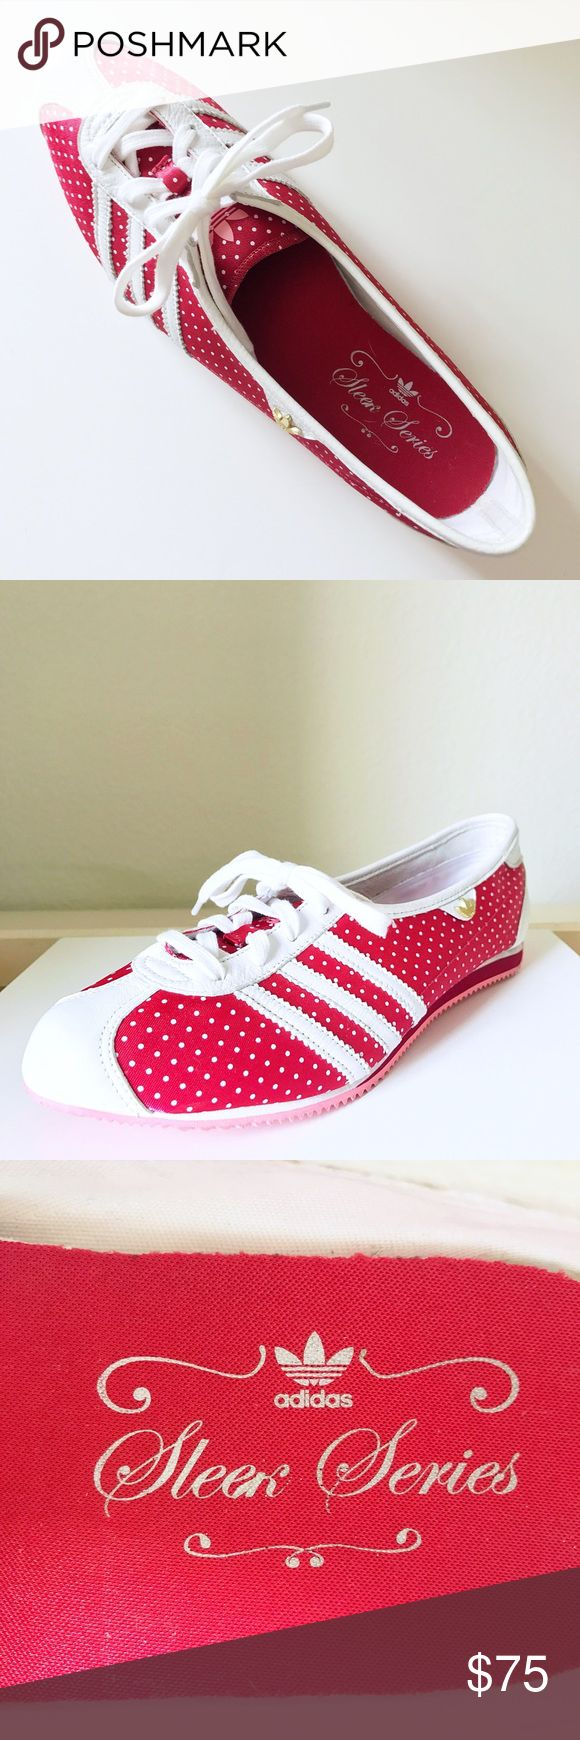 ❤ADIDAS SLEEK SERIES shoes❤ Limited edition & and so fun with the polka dots! I wear a size 7.5 (usually) and this fit a tad big on me, they are in like new condition. Adidas Shoes Sneakers